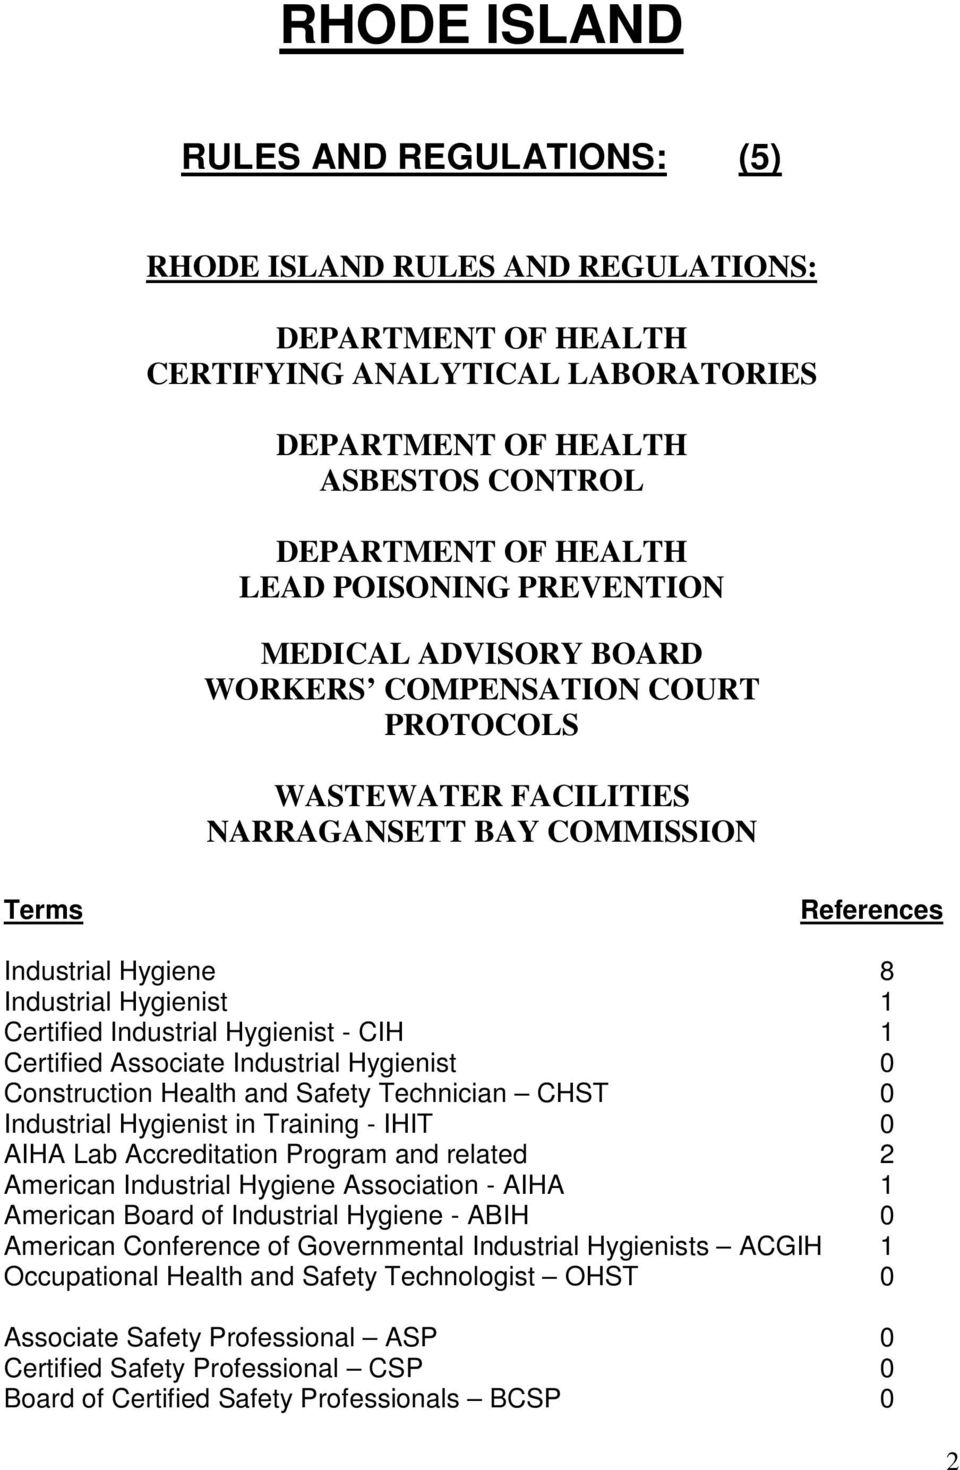 Certified Industrial Hygienist - CIH 1 Certified Associate Industrial Hygienist 0 Construction Health and Safety Technician CHST 0 Industrial Hygienist in Training - IHIT 0 AIHA Lab Accreditation